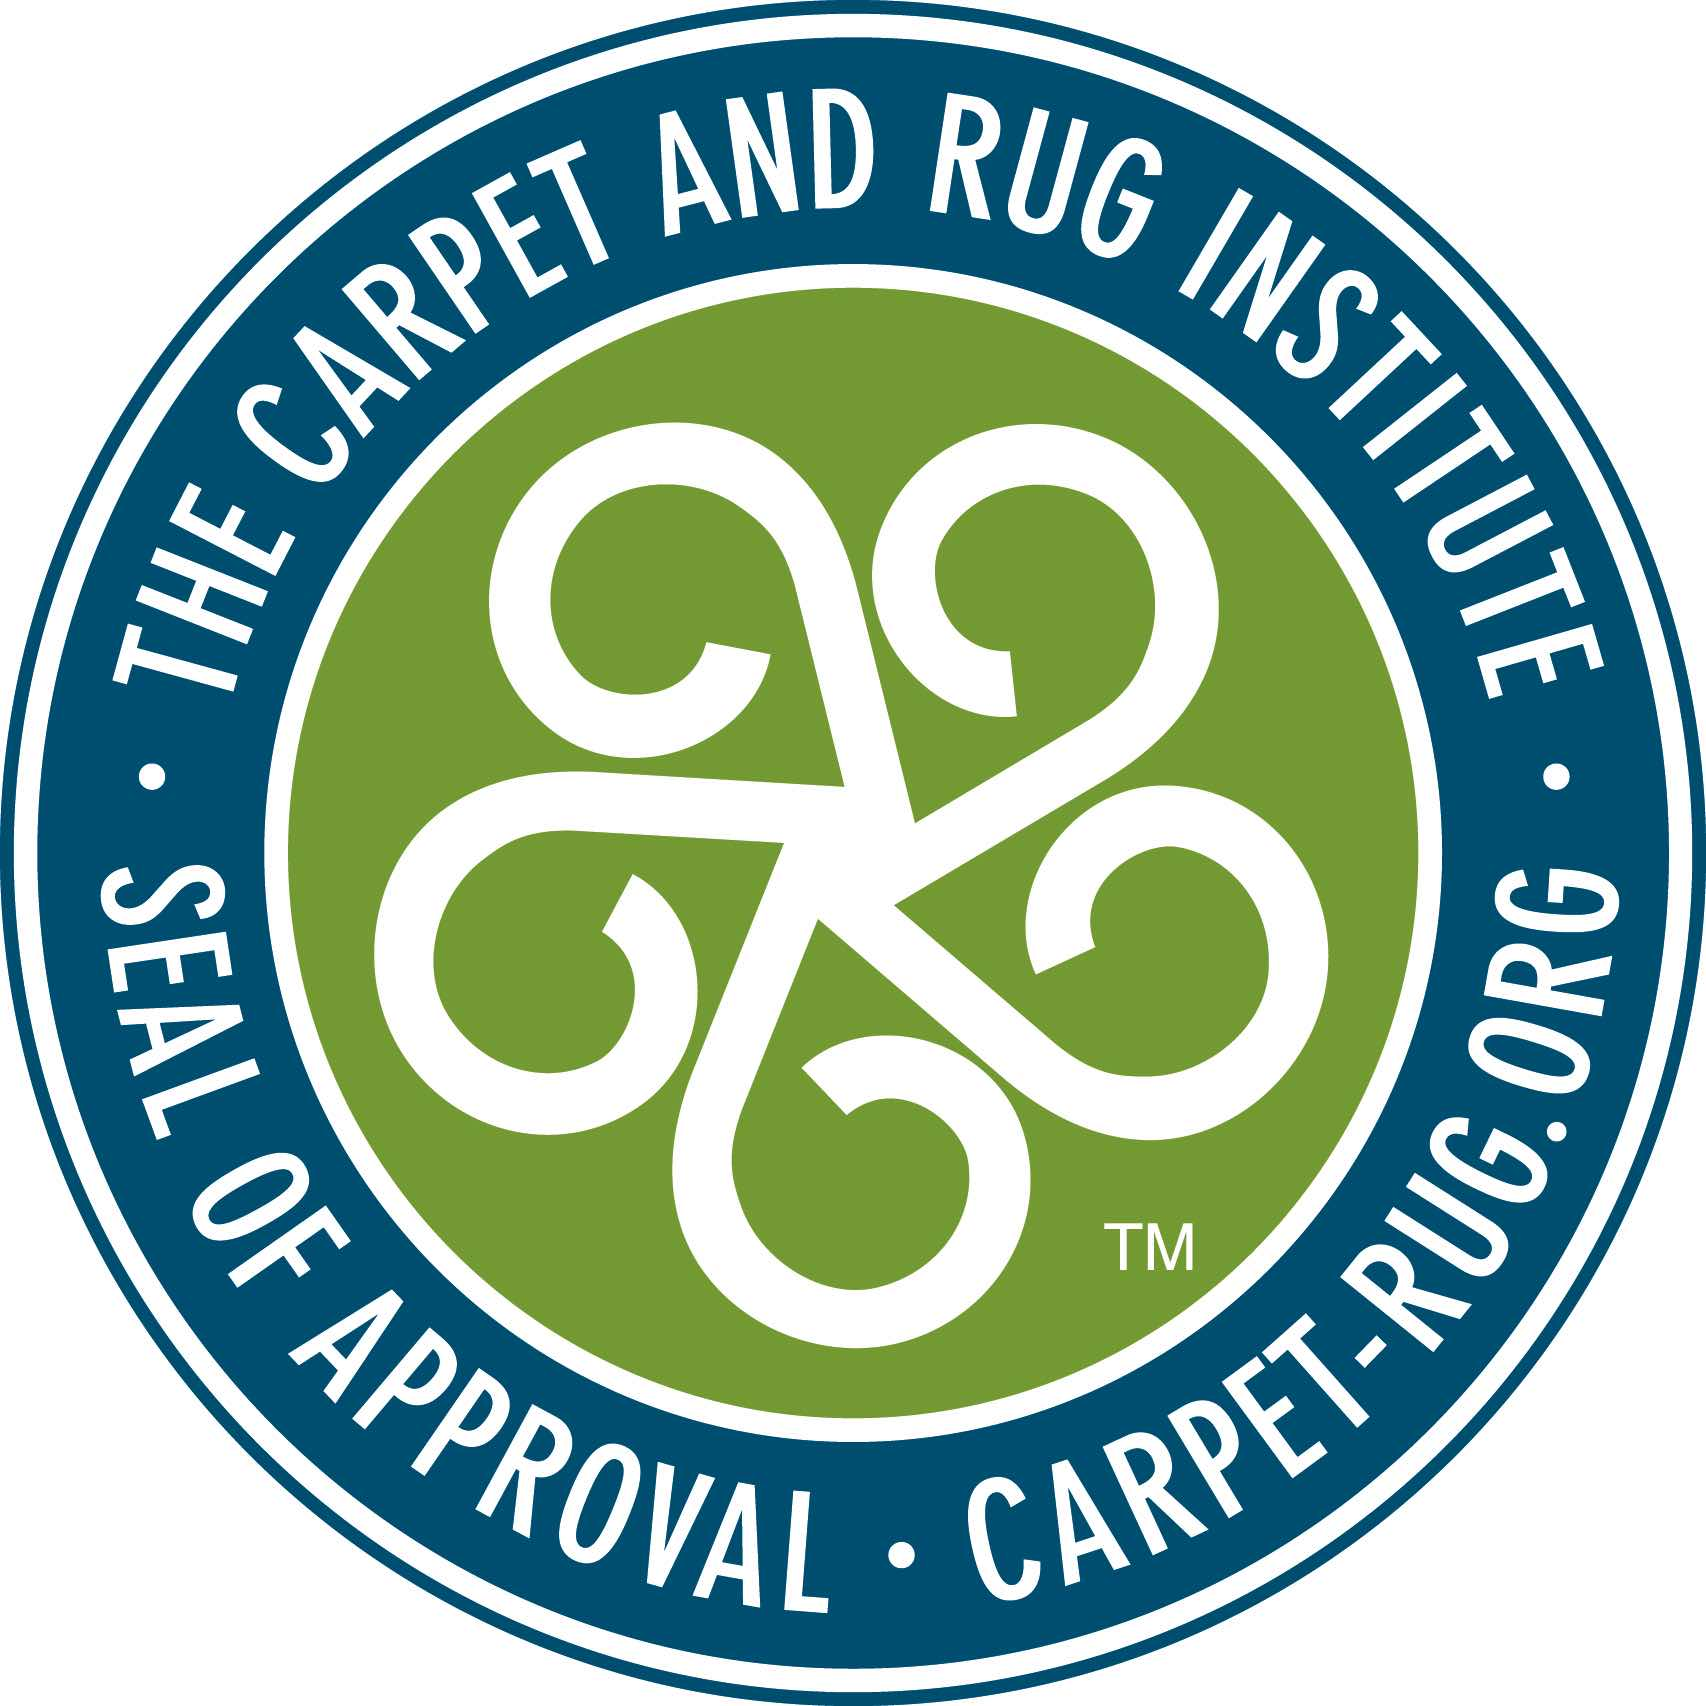 The Carpet and Rug Institute - Seal of Approval